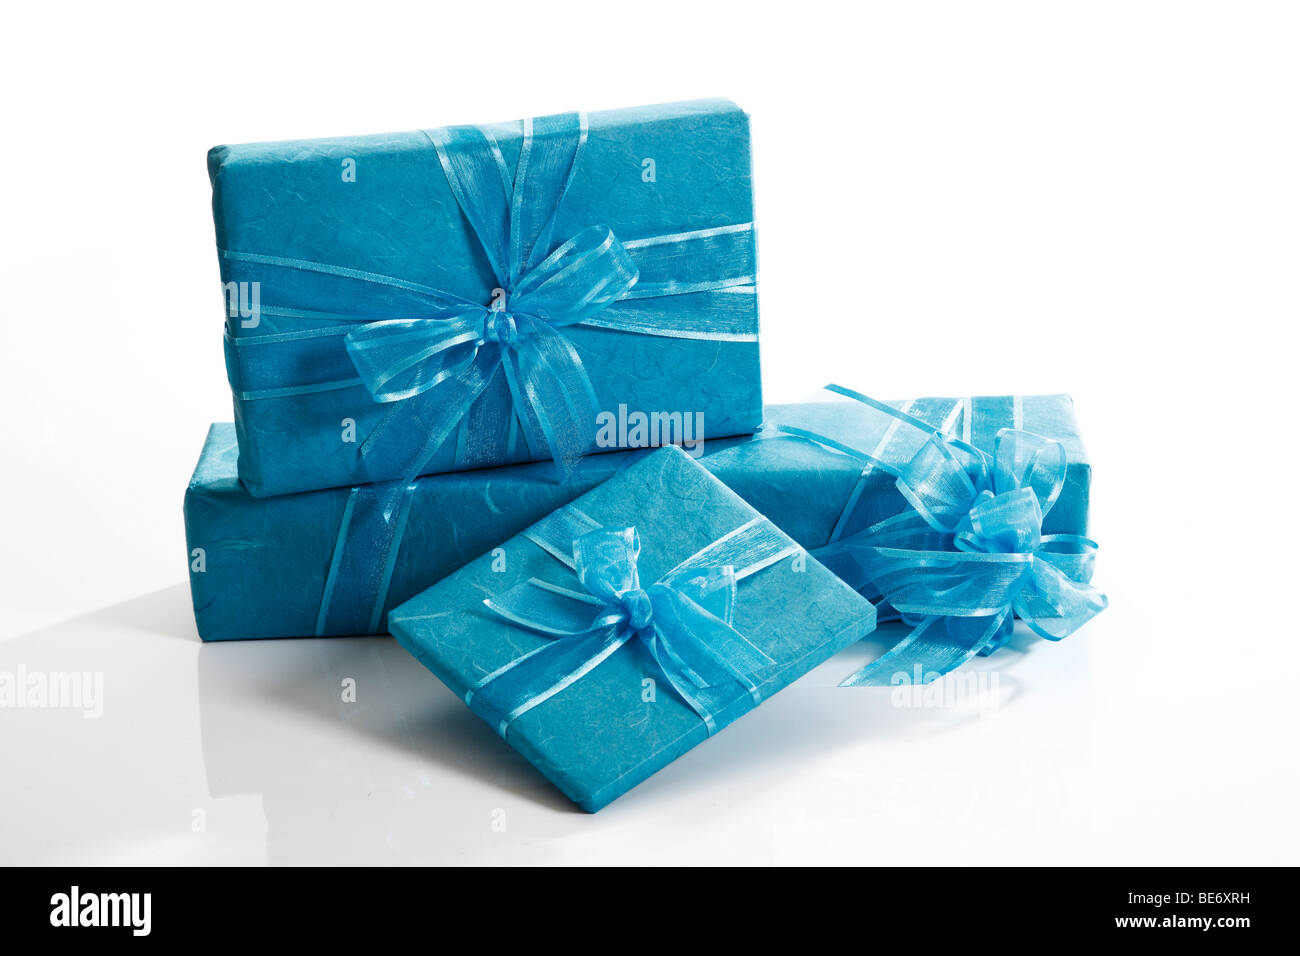 Presents with ribbons - Stock Image